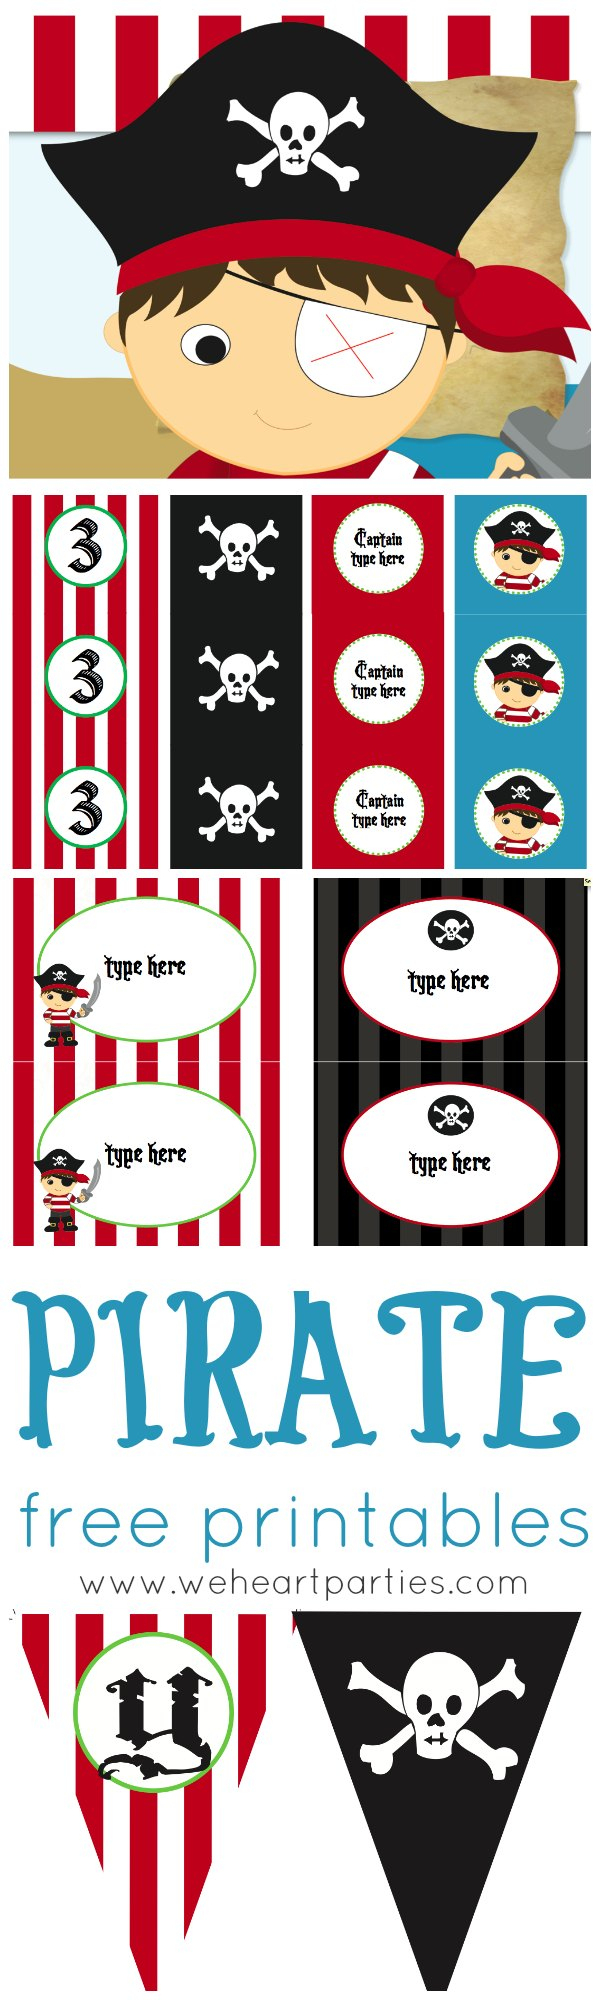 We Heart Parties: Free Printables Pirate Party Free Printables - Free Printable Pirate Cupcake Toppers